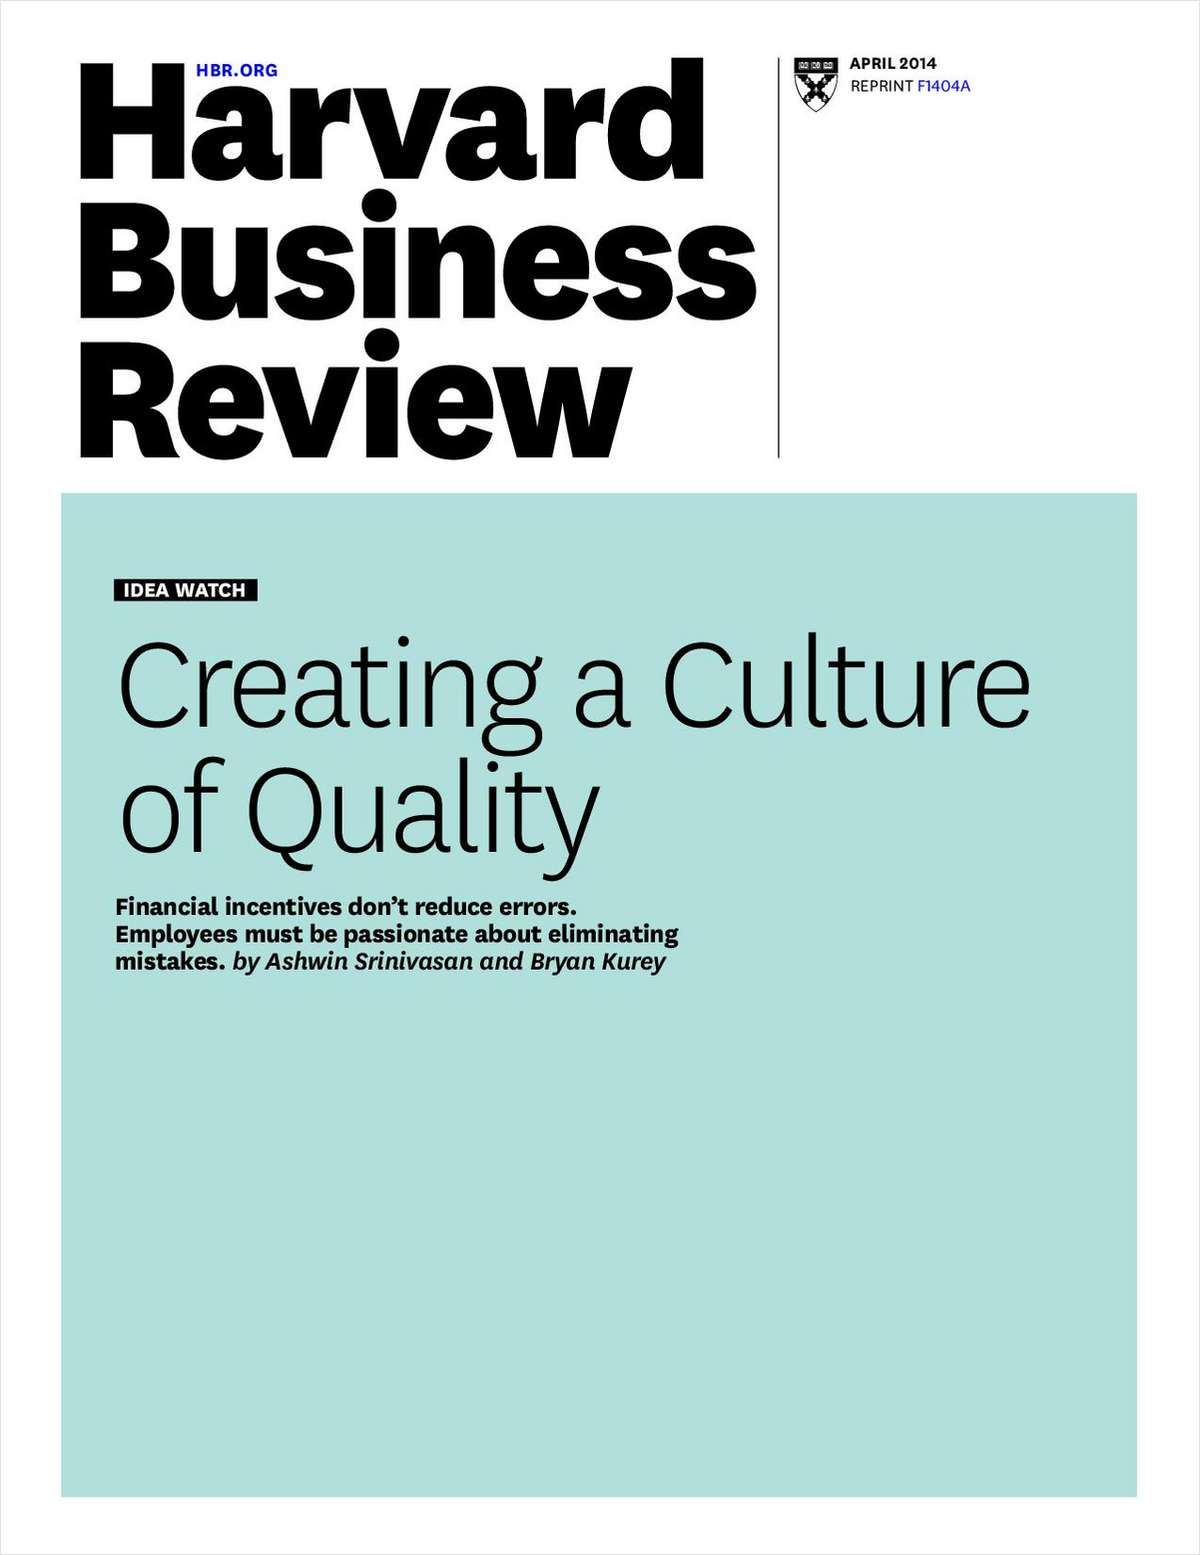 Harvard Business Review: Creating a Culture of Quality